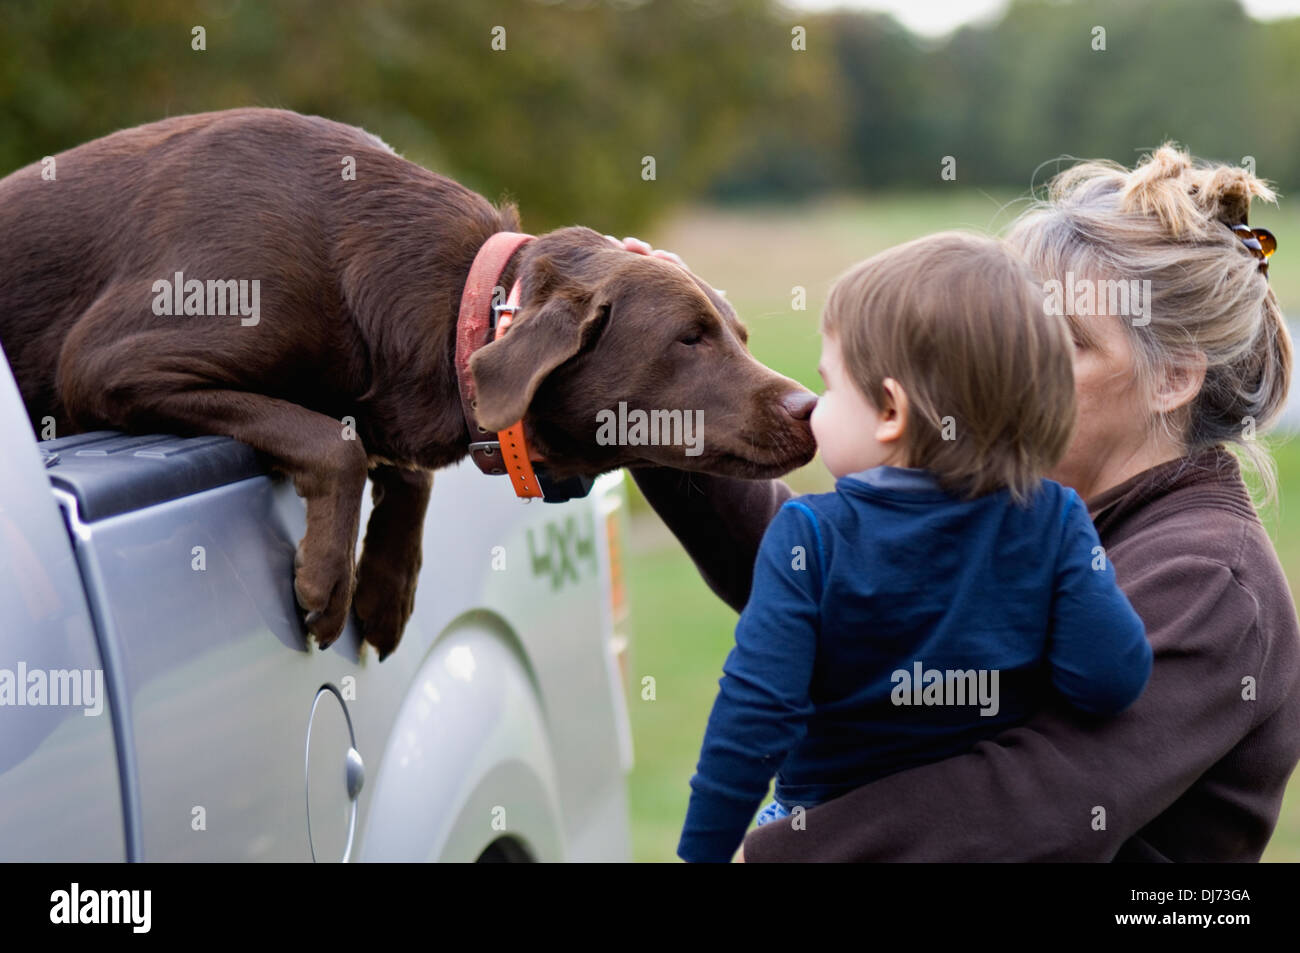 Labrador Retriever Greeting Young Boy being Held in Grandmothers Arms - Stock Image